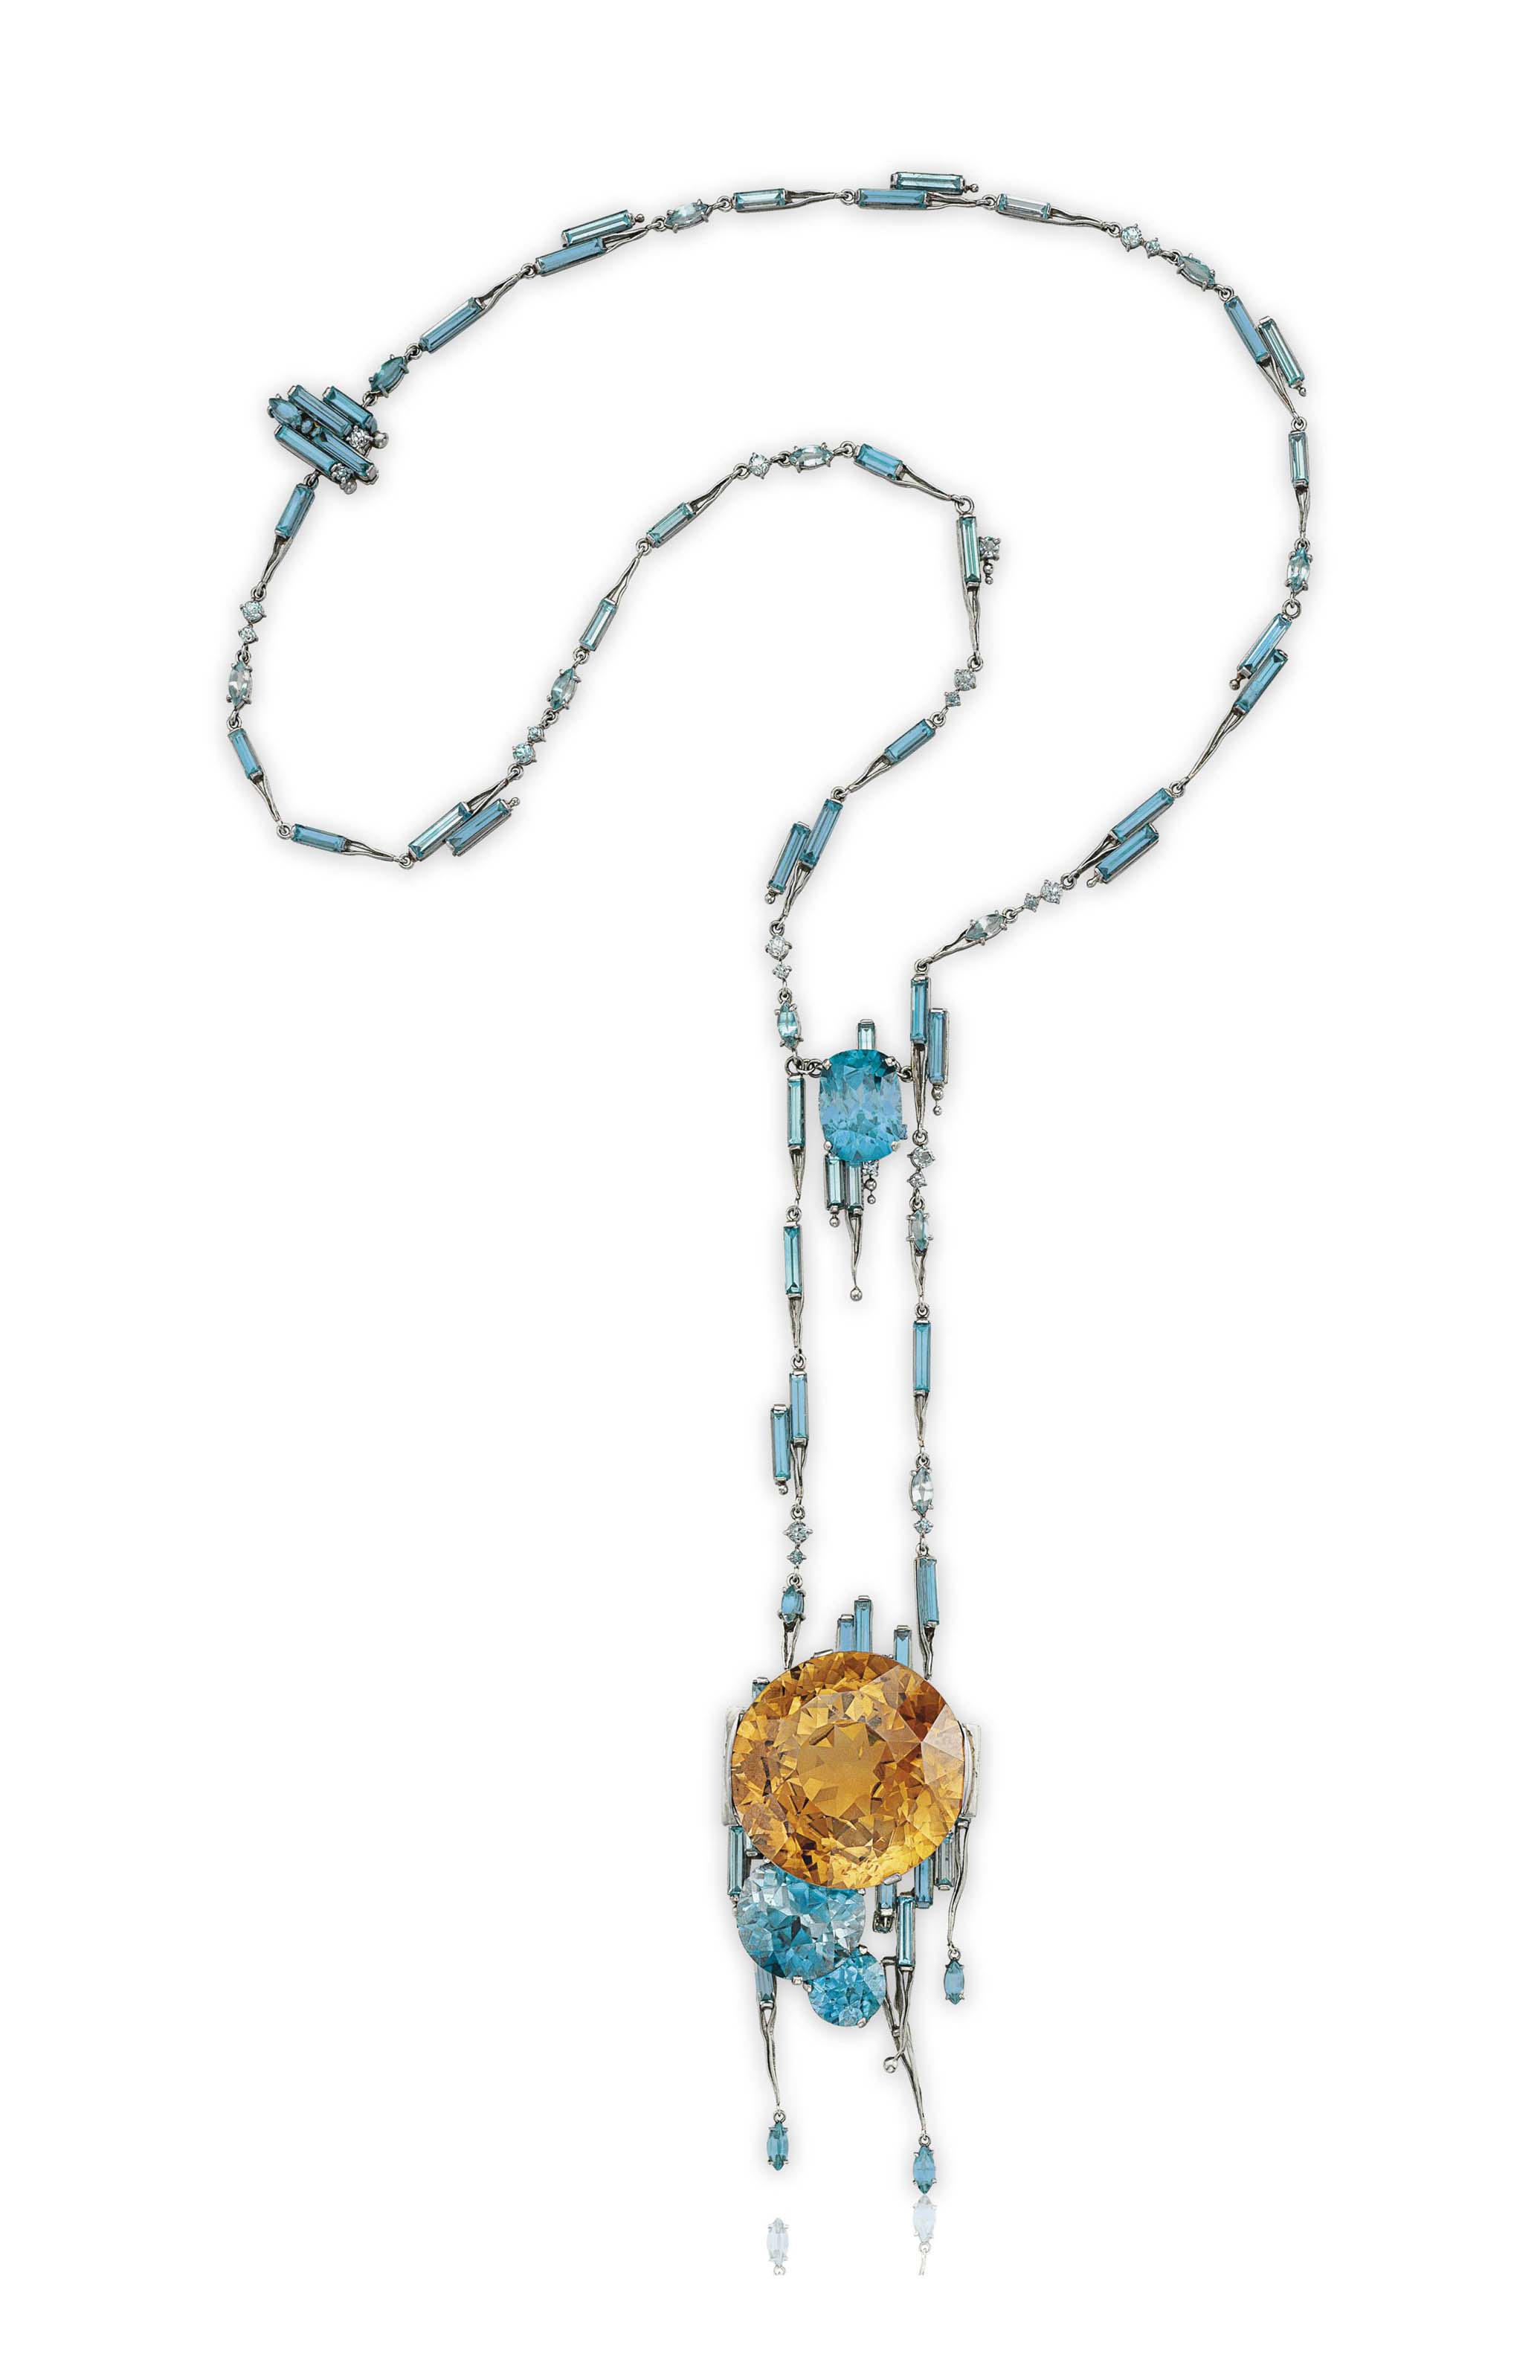 AN UNUSUAL MULTI-COLORED ZIRCON AND PLATINUM NECKLACE, BY LOUIS COMFORT TIFFANY, TIFFANY & CO.